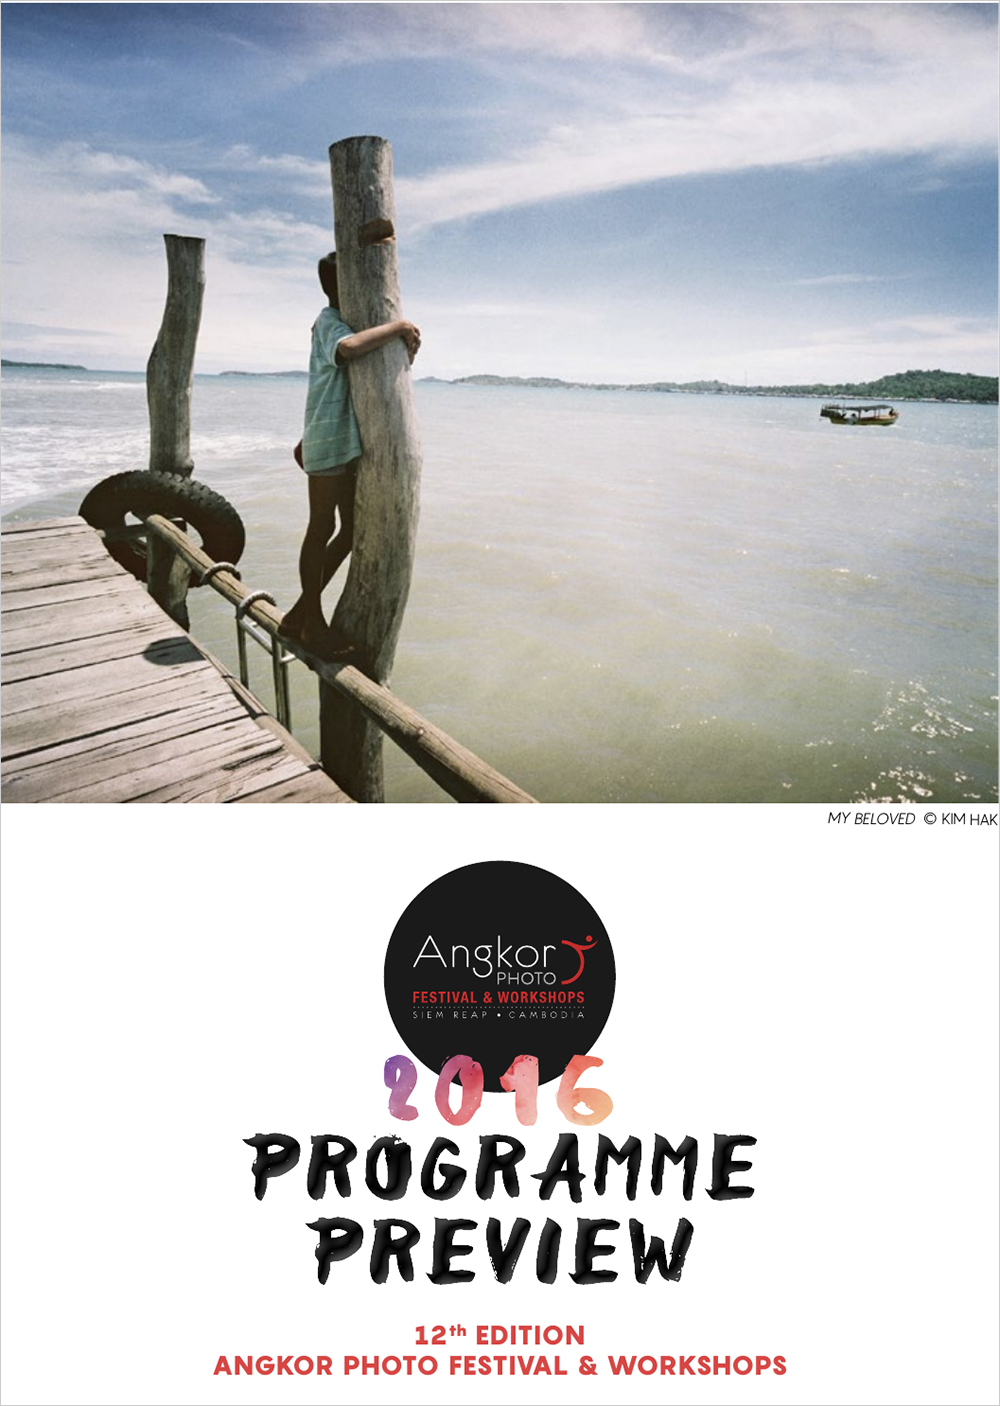 12th Edition Angkor Photo Festival & Workshops